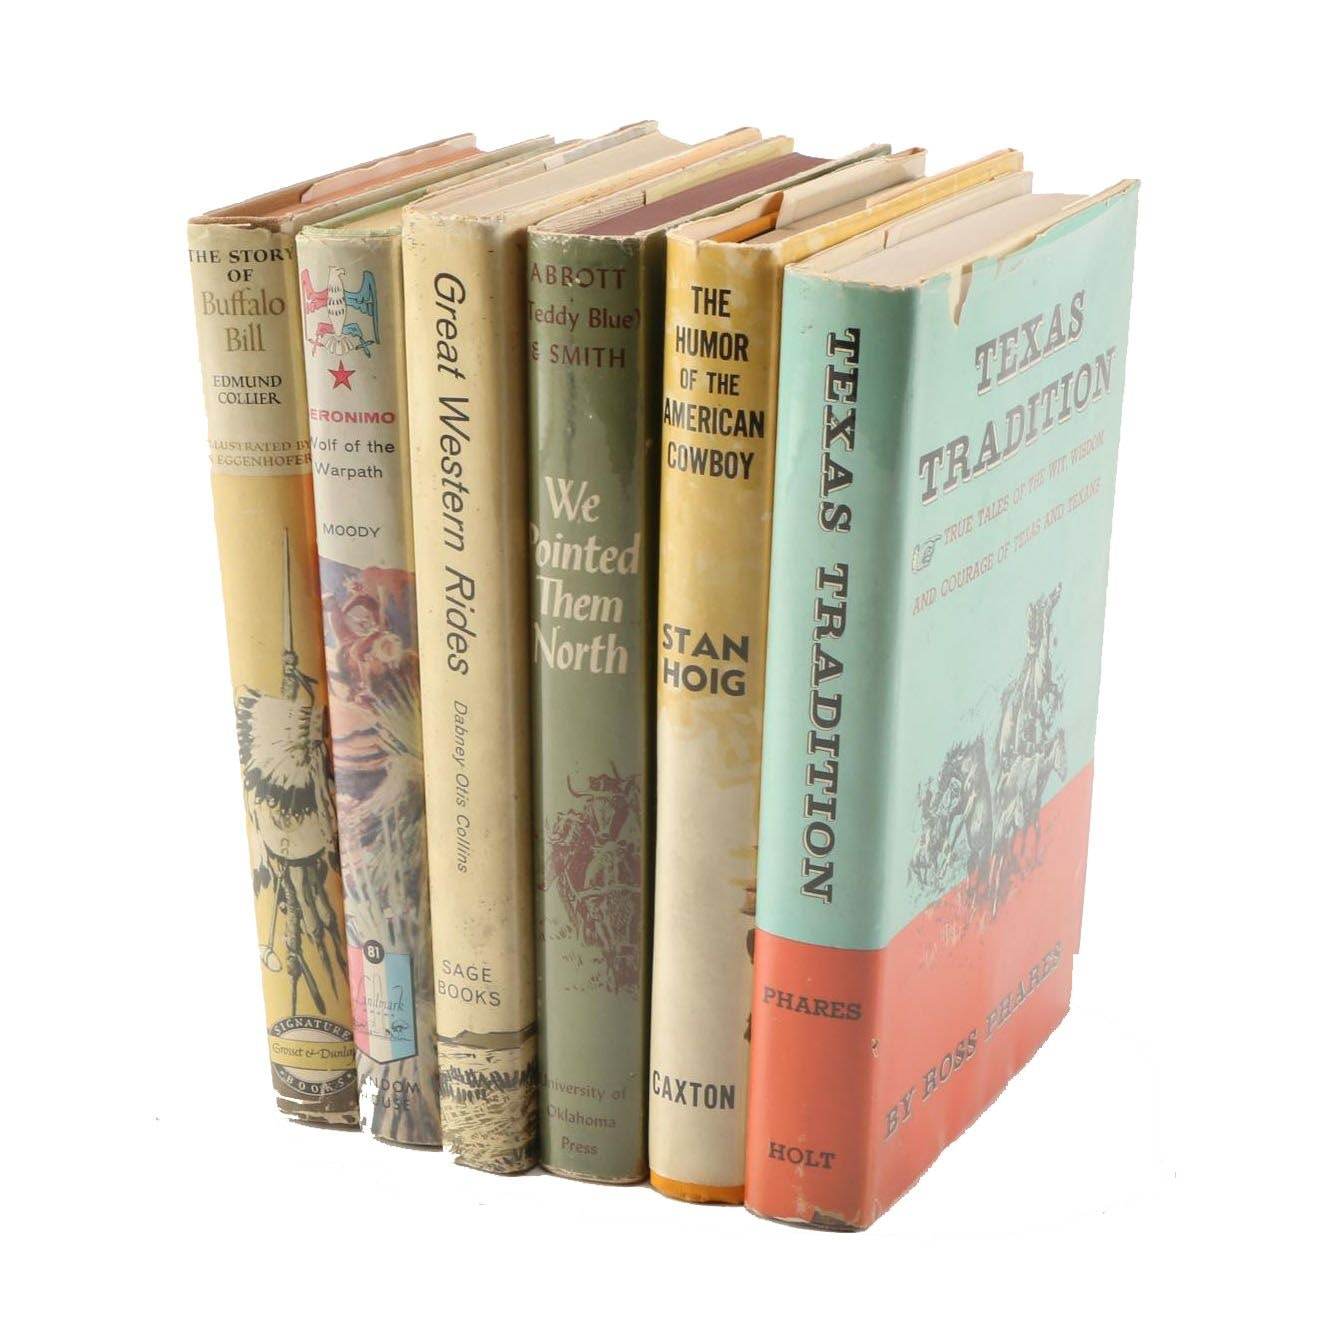 Set Of Illustrated Books on American Western Life